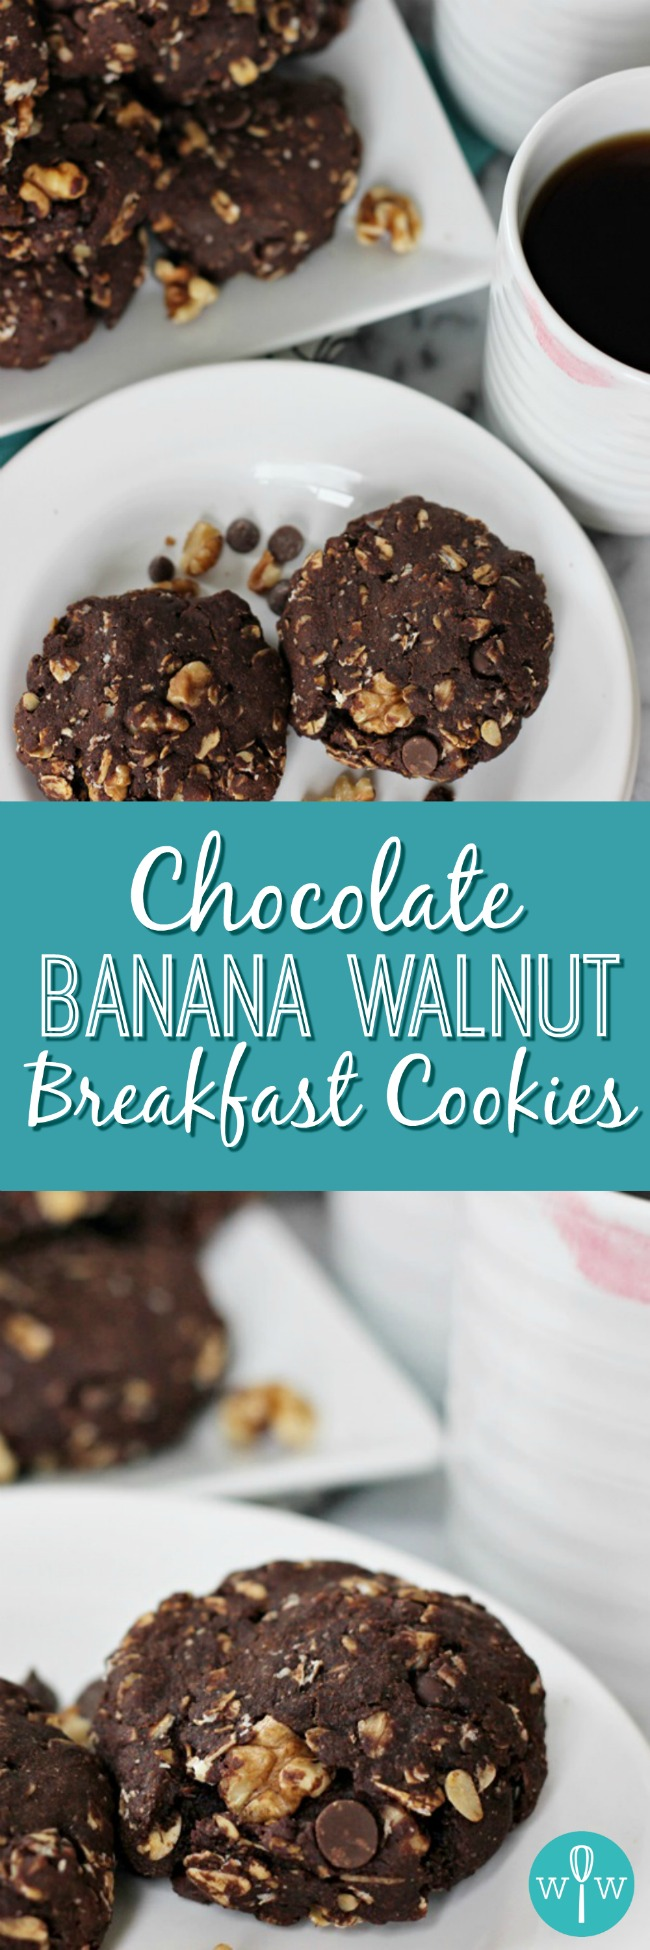 Chocolate Banana Walnut Breakfast Cookies – Who doesn't love cookies for breakfast? With omega 3s, antioxidants, potassium, and heart-friendly oats, these cookies are delicious AND good for you. | www.worthwhisking.com